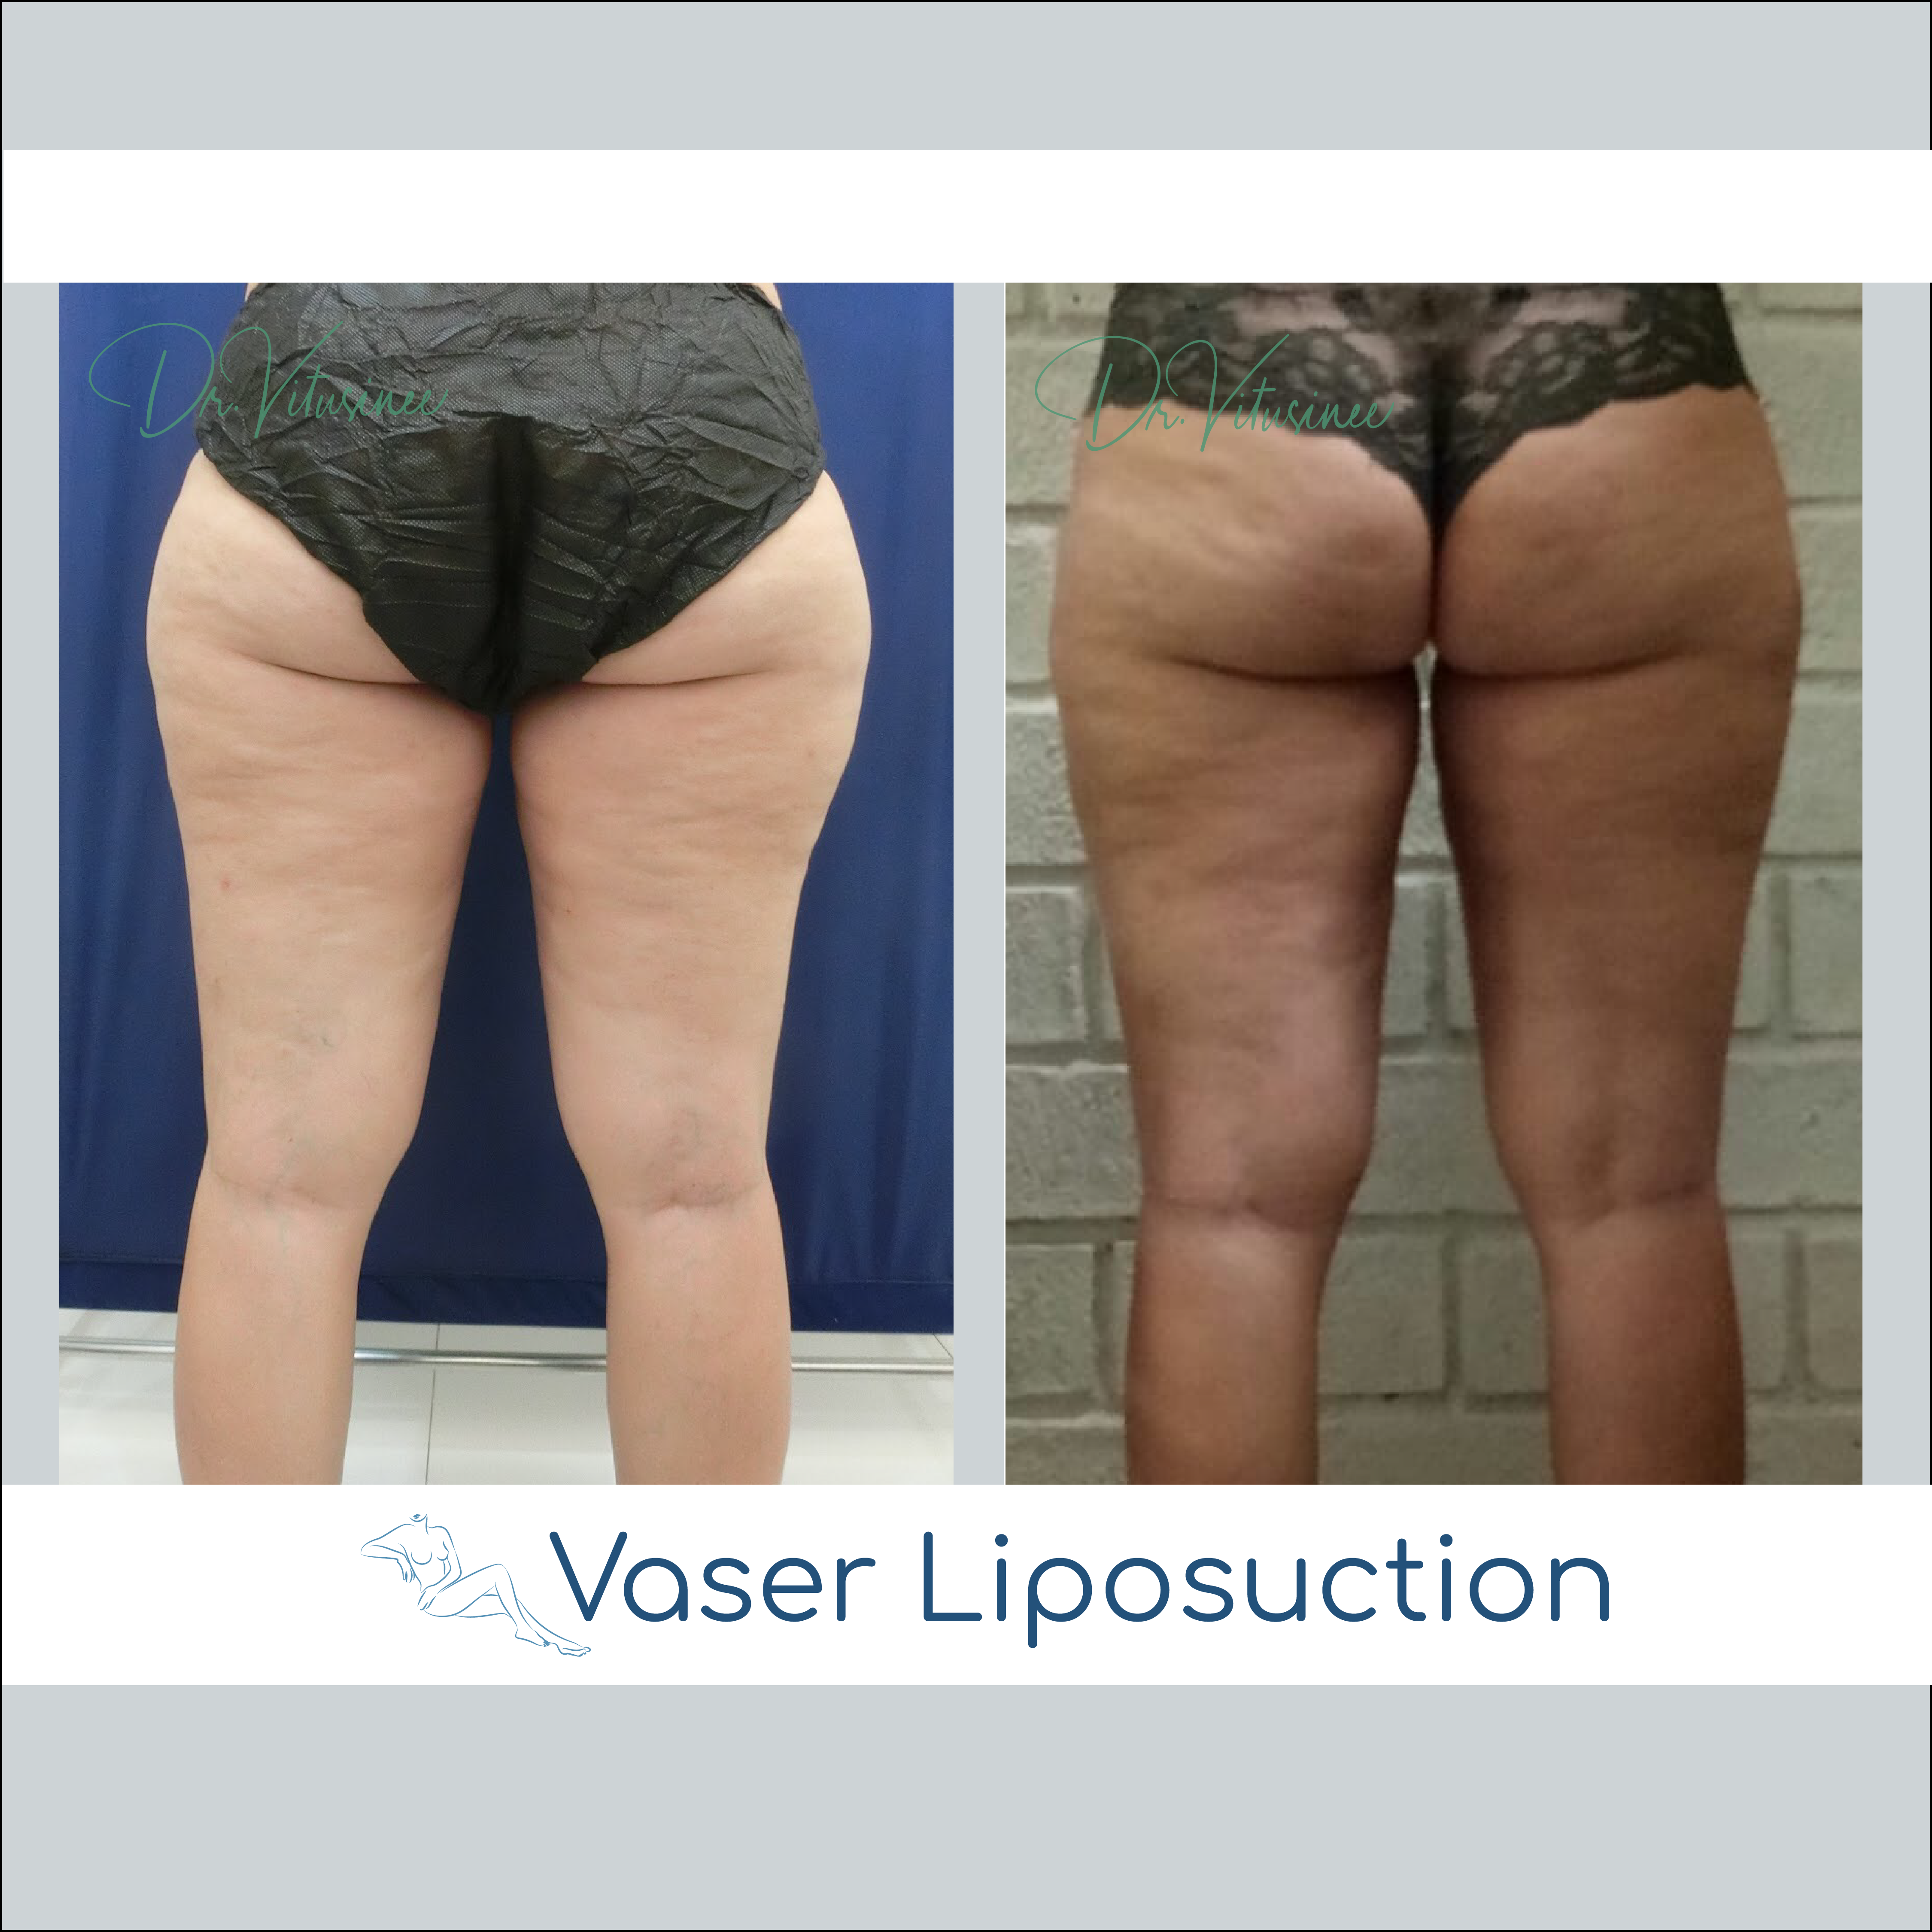 vaser liposuction thigh and hip